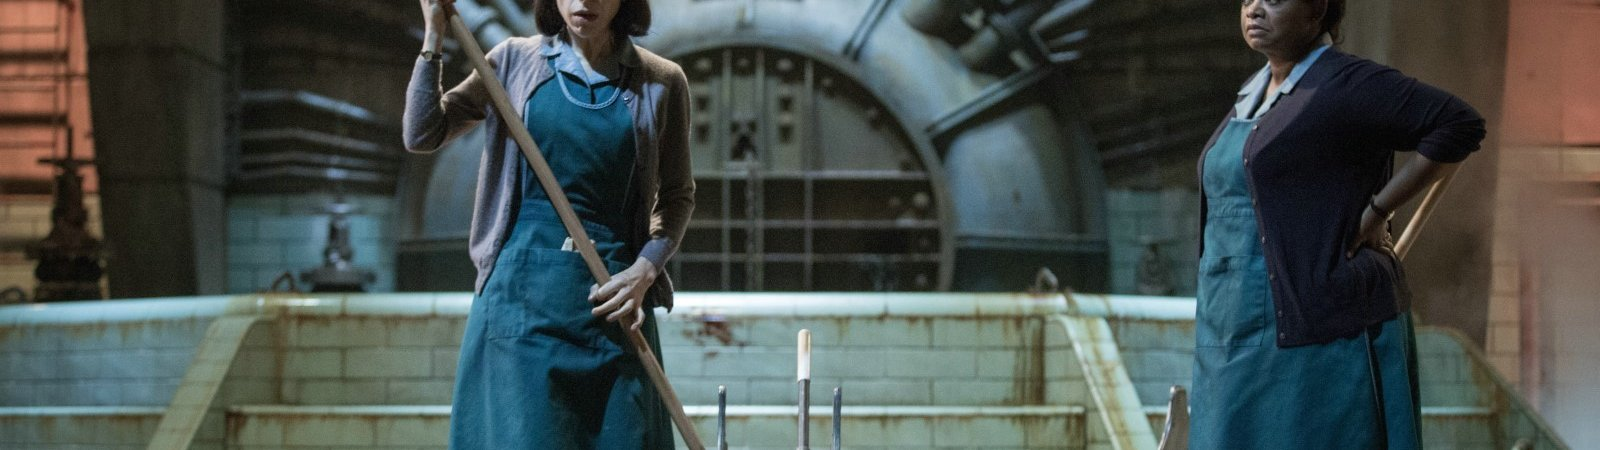 Photo du film : La Forme de l'eau - The Shape of Water